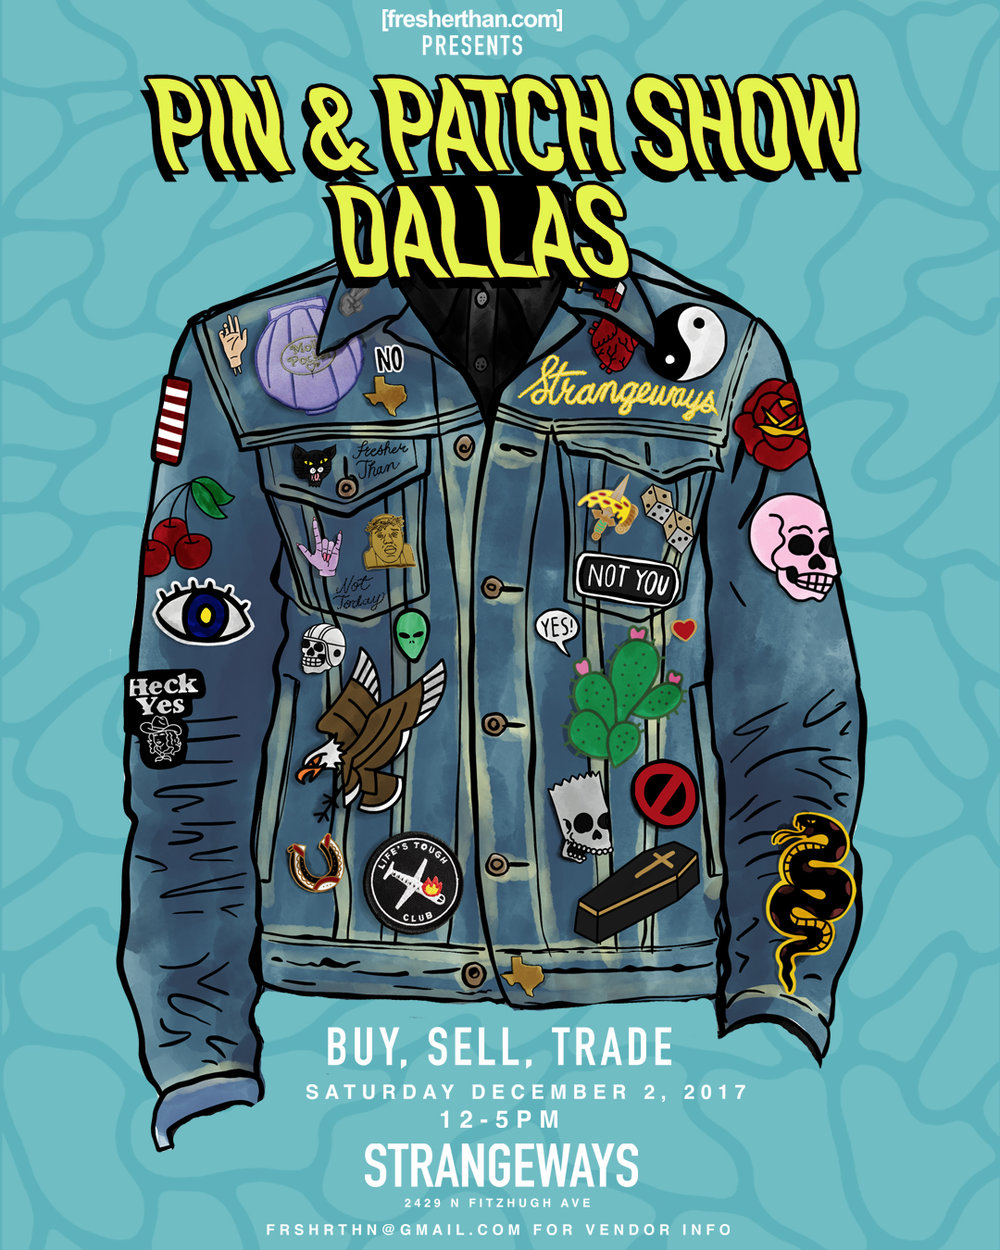 pin&patch_dallas-ig-portrait.jpg